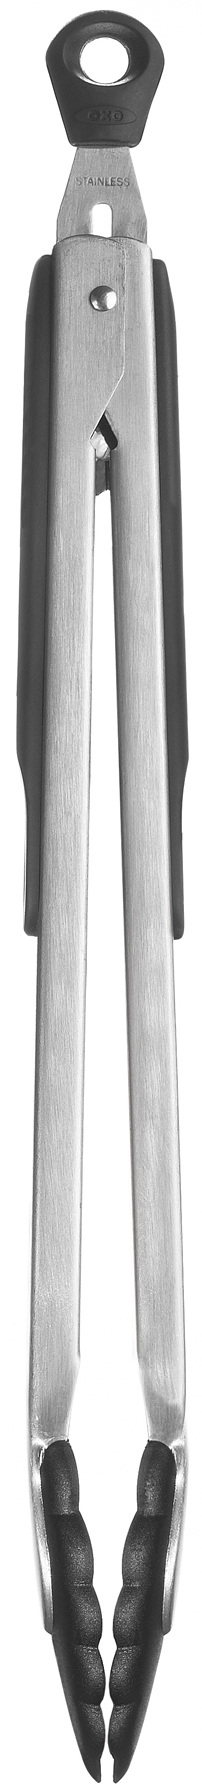 OXO Good Grips Stainless Steel Tong with Nylon Heads